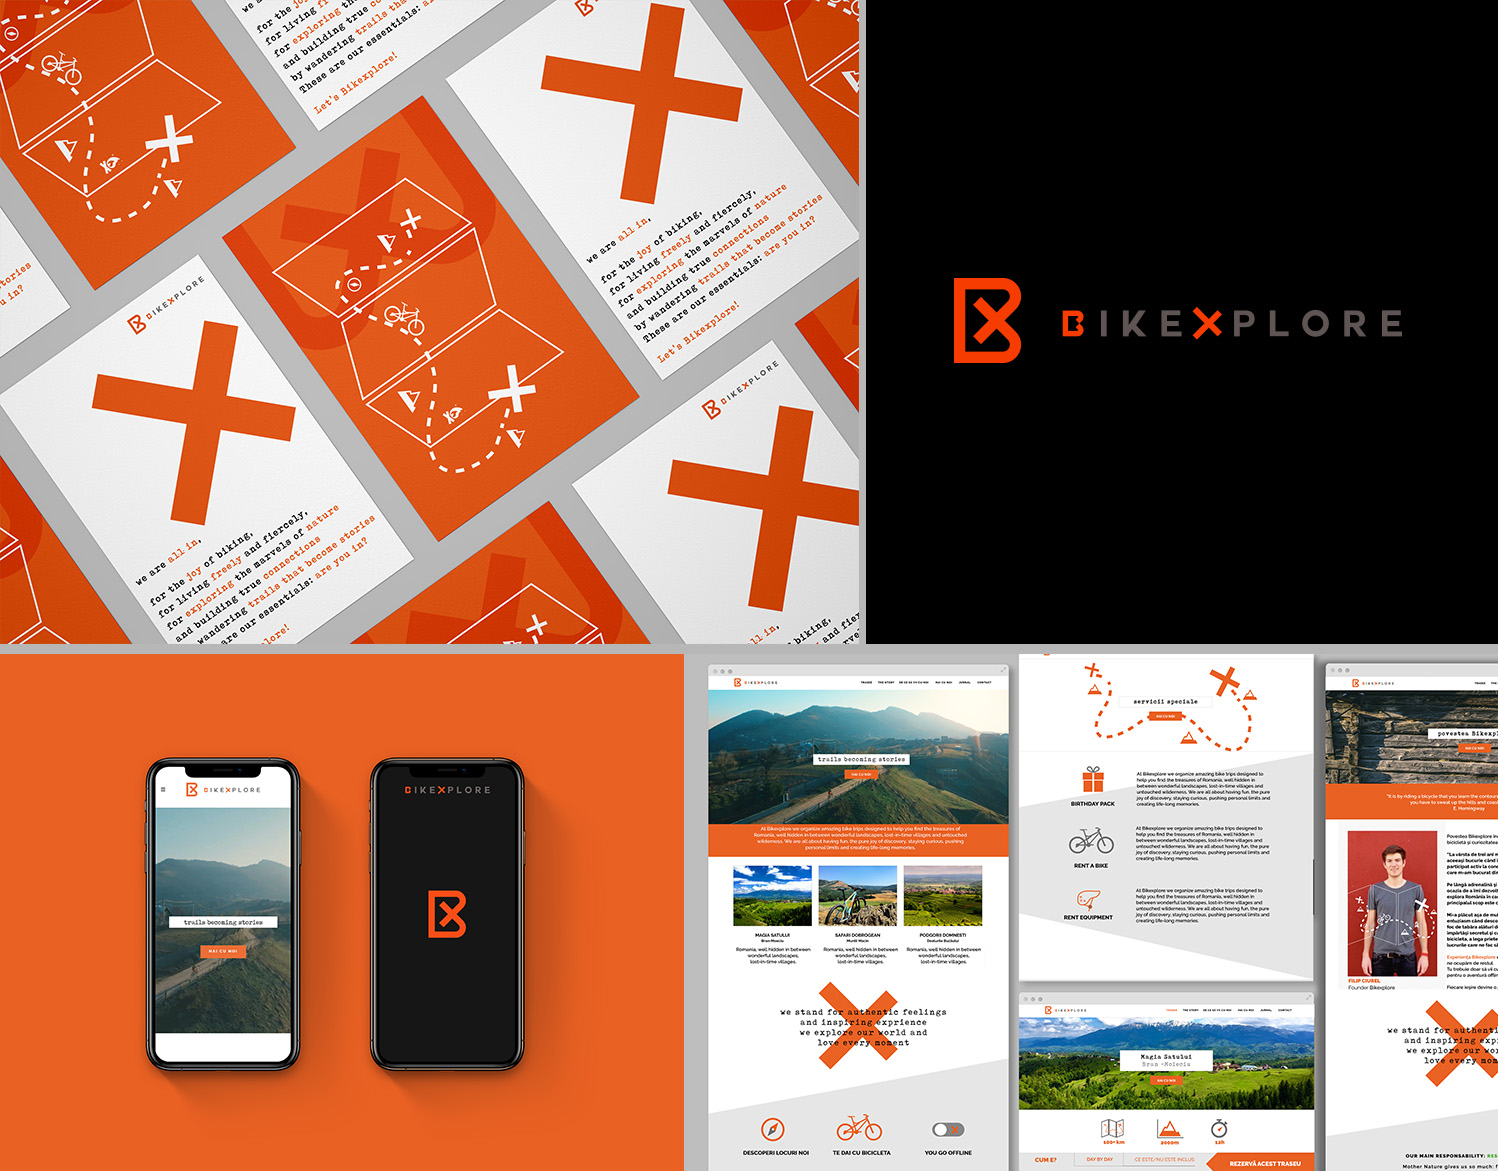 Bikexplore – branding: identity, strategy, artwork, web